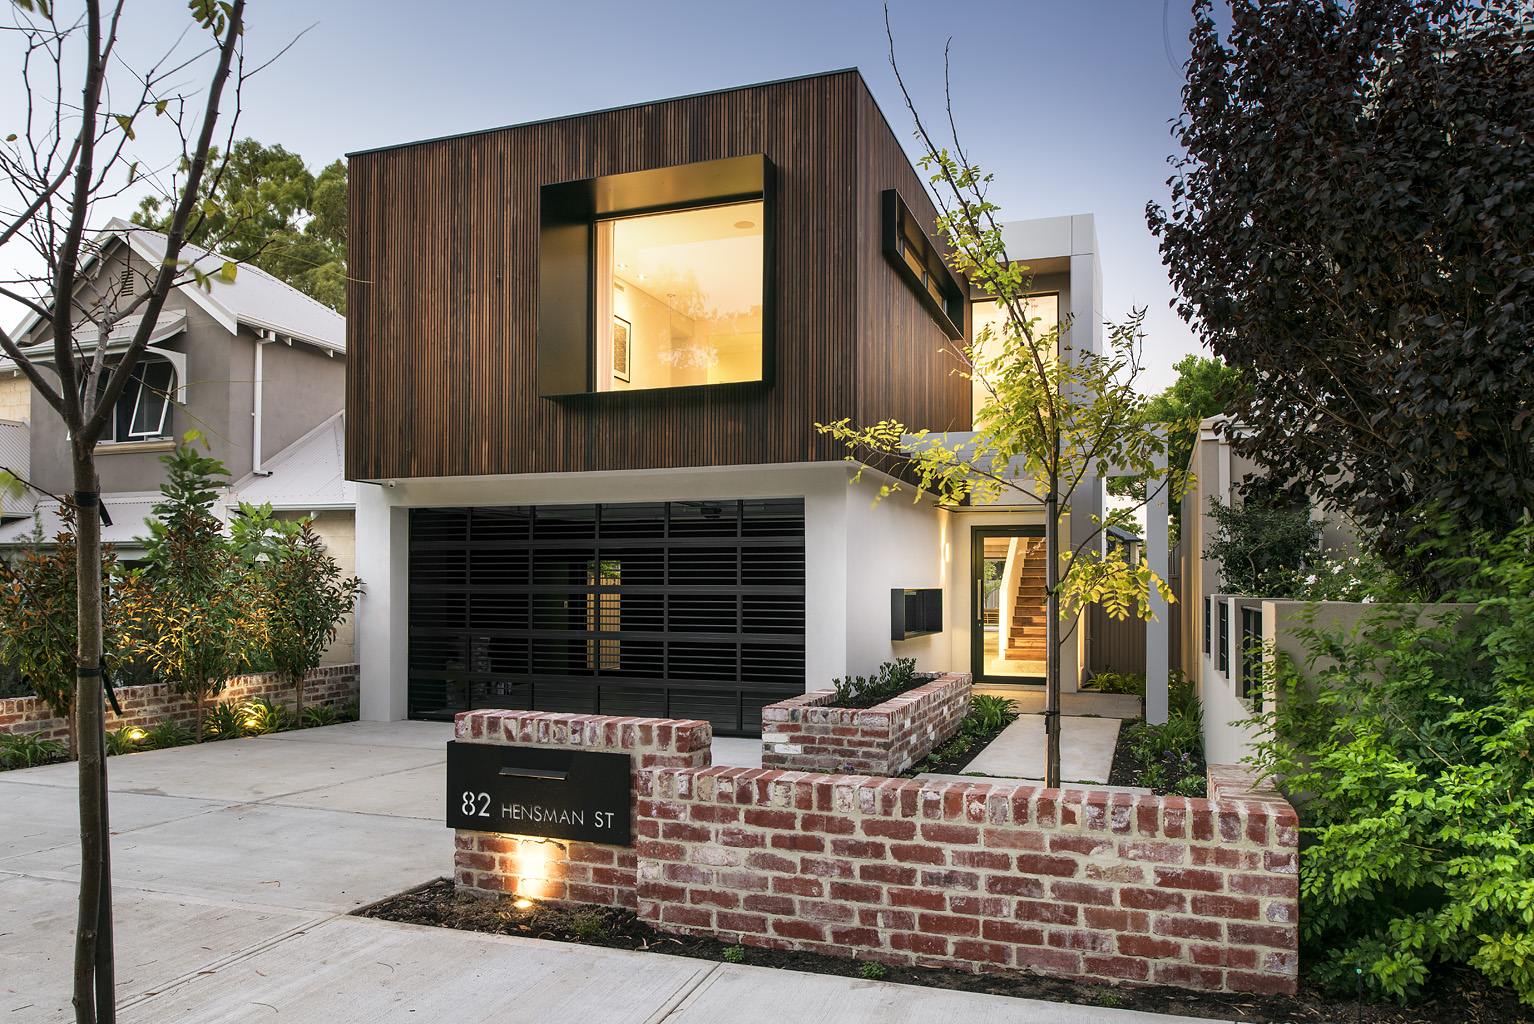 Looks modern  - but homes like this are really no different than brick homes from 100 years ago.